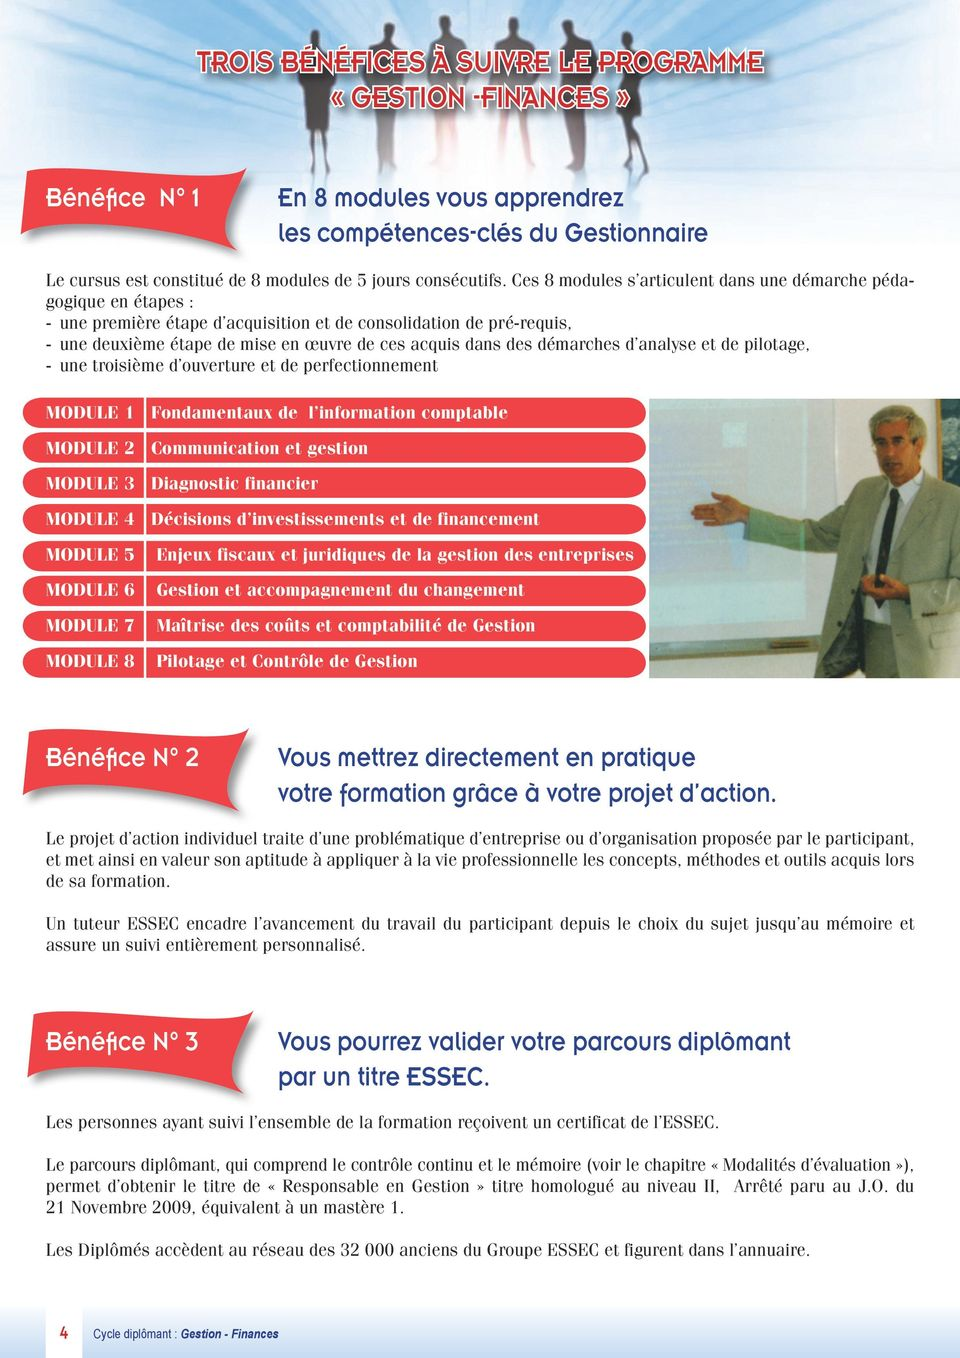 démarches d analyse et de pilotage, - une troisième d ouverture et de perfectionnement MODULE 1 Fondamentaux de l information comptable MODULE 2 Communication et gestion MODULE 3 Diagnostic financier